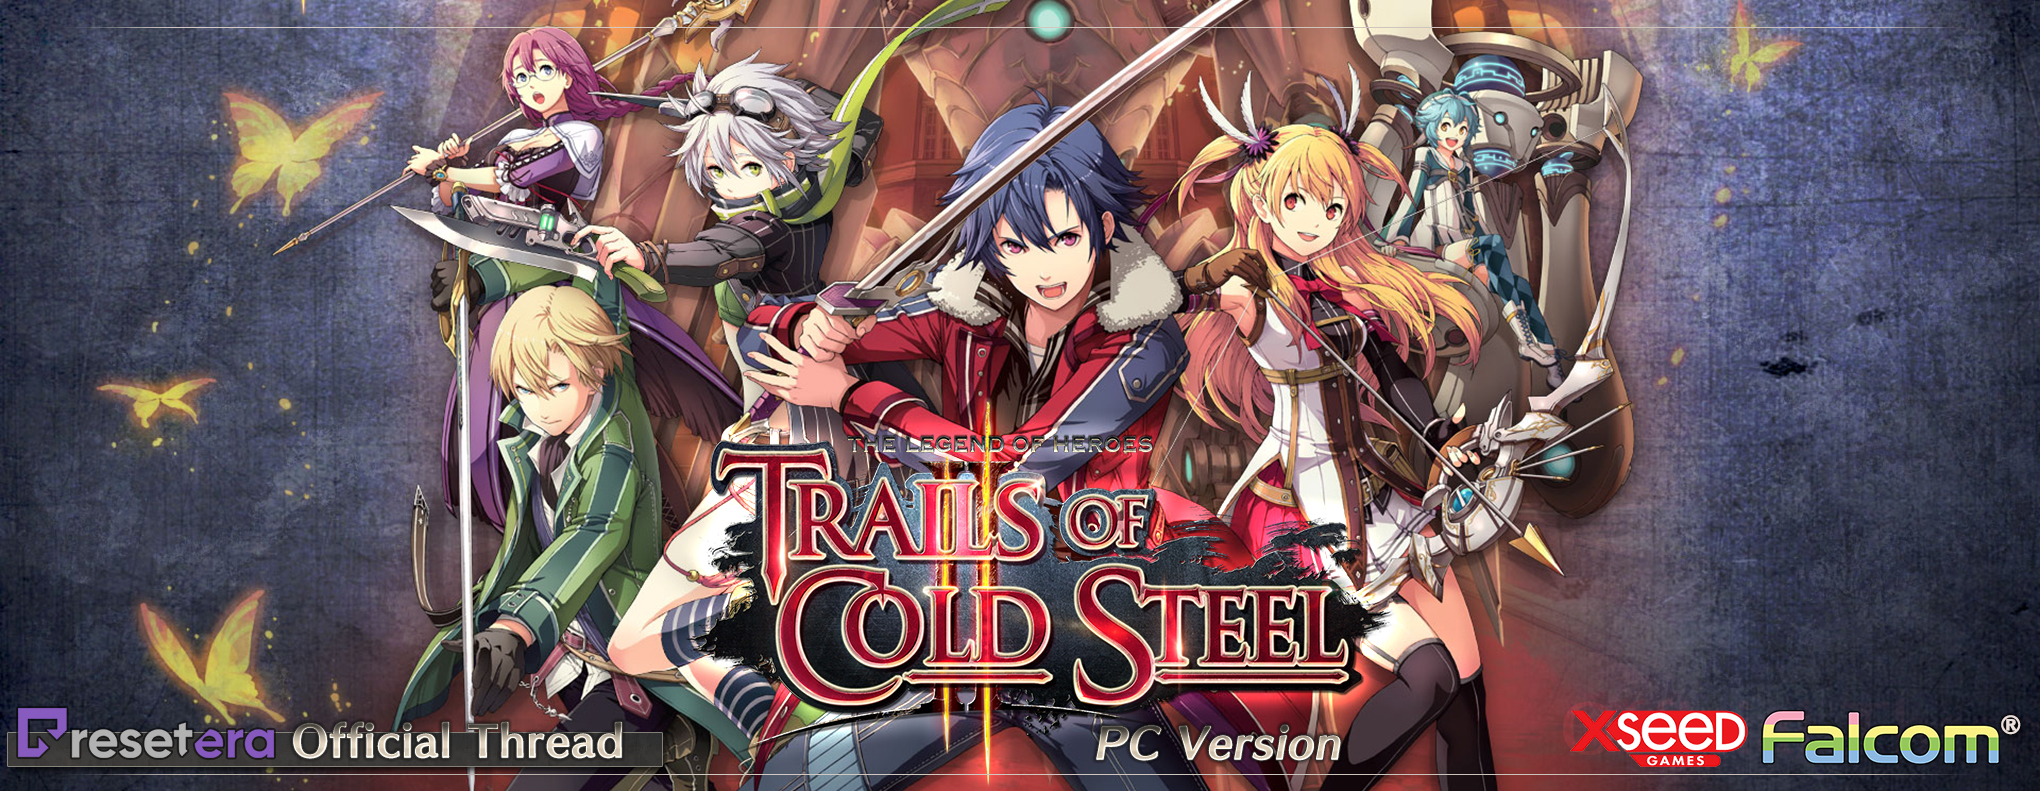 Trails Of Cold Steel World Map.The Legend Of Heroes Trails Of Cold Steel Ii Pc Ot Coup D Head